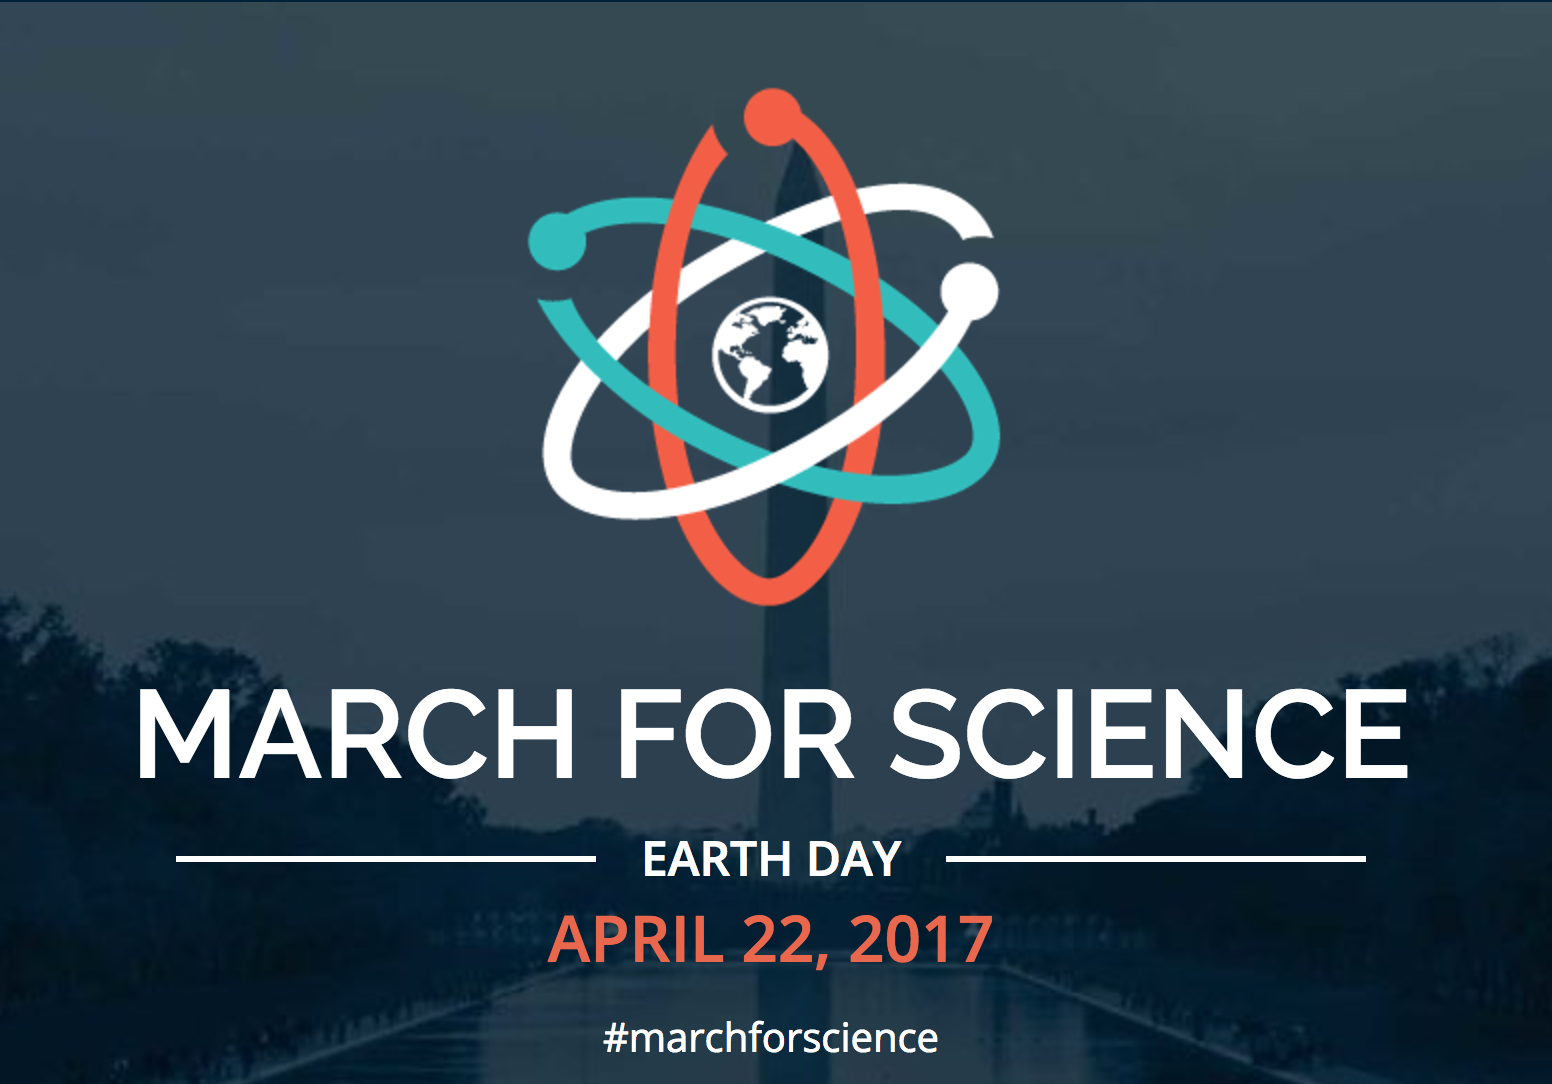 The March for Science, scheduled for April 22, aims to sound a call for the support of science in a time of skepticism of science and dismissal of climate change evidence. The original march will be taking place in Washington, DC, but the movement has inspired over 360 satellite marches elsewhere around the world.